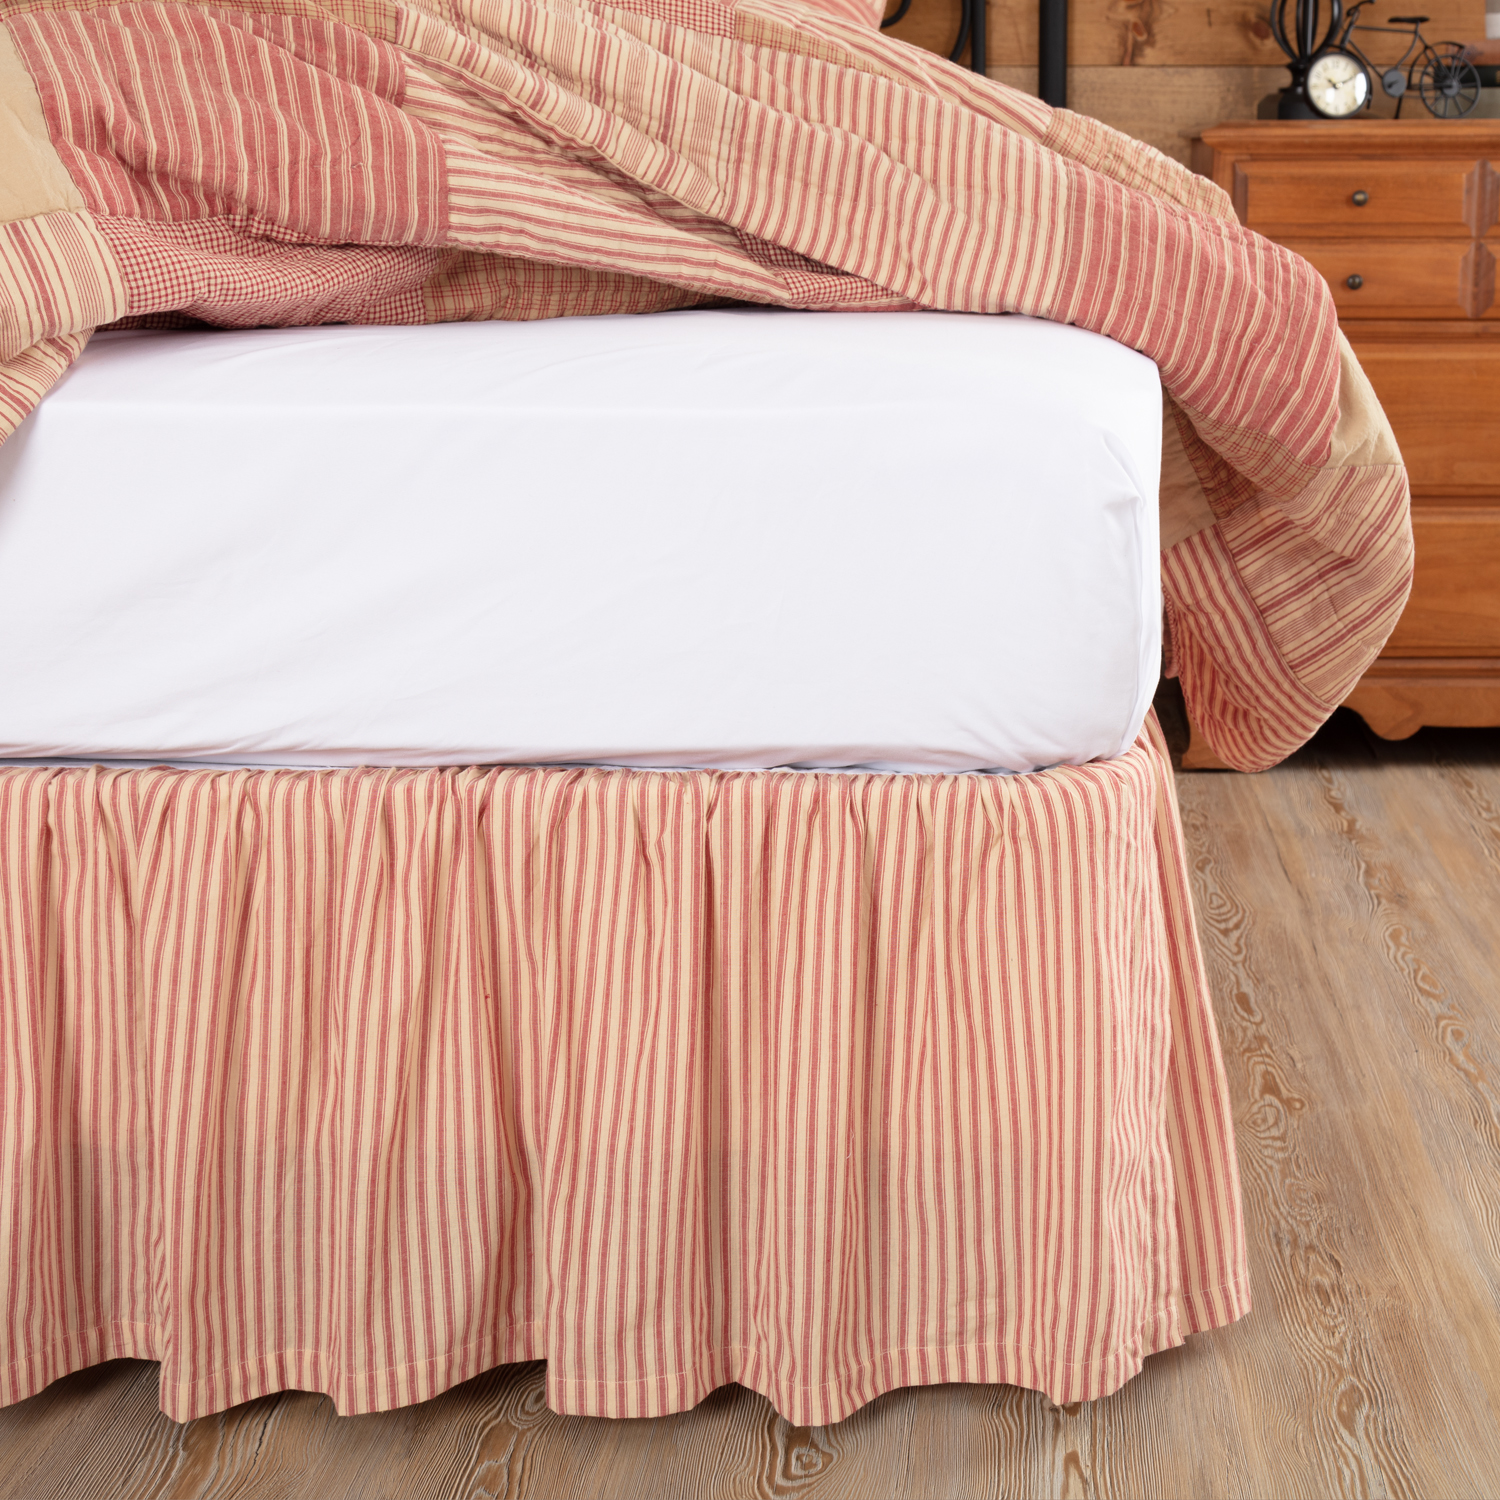 Sawyer Mill Red Ticking Stripe King Bed Skirt 78x80x16